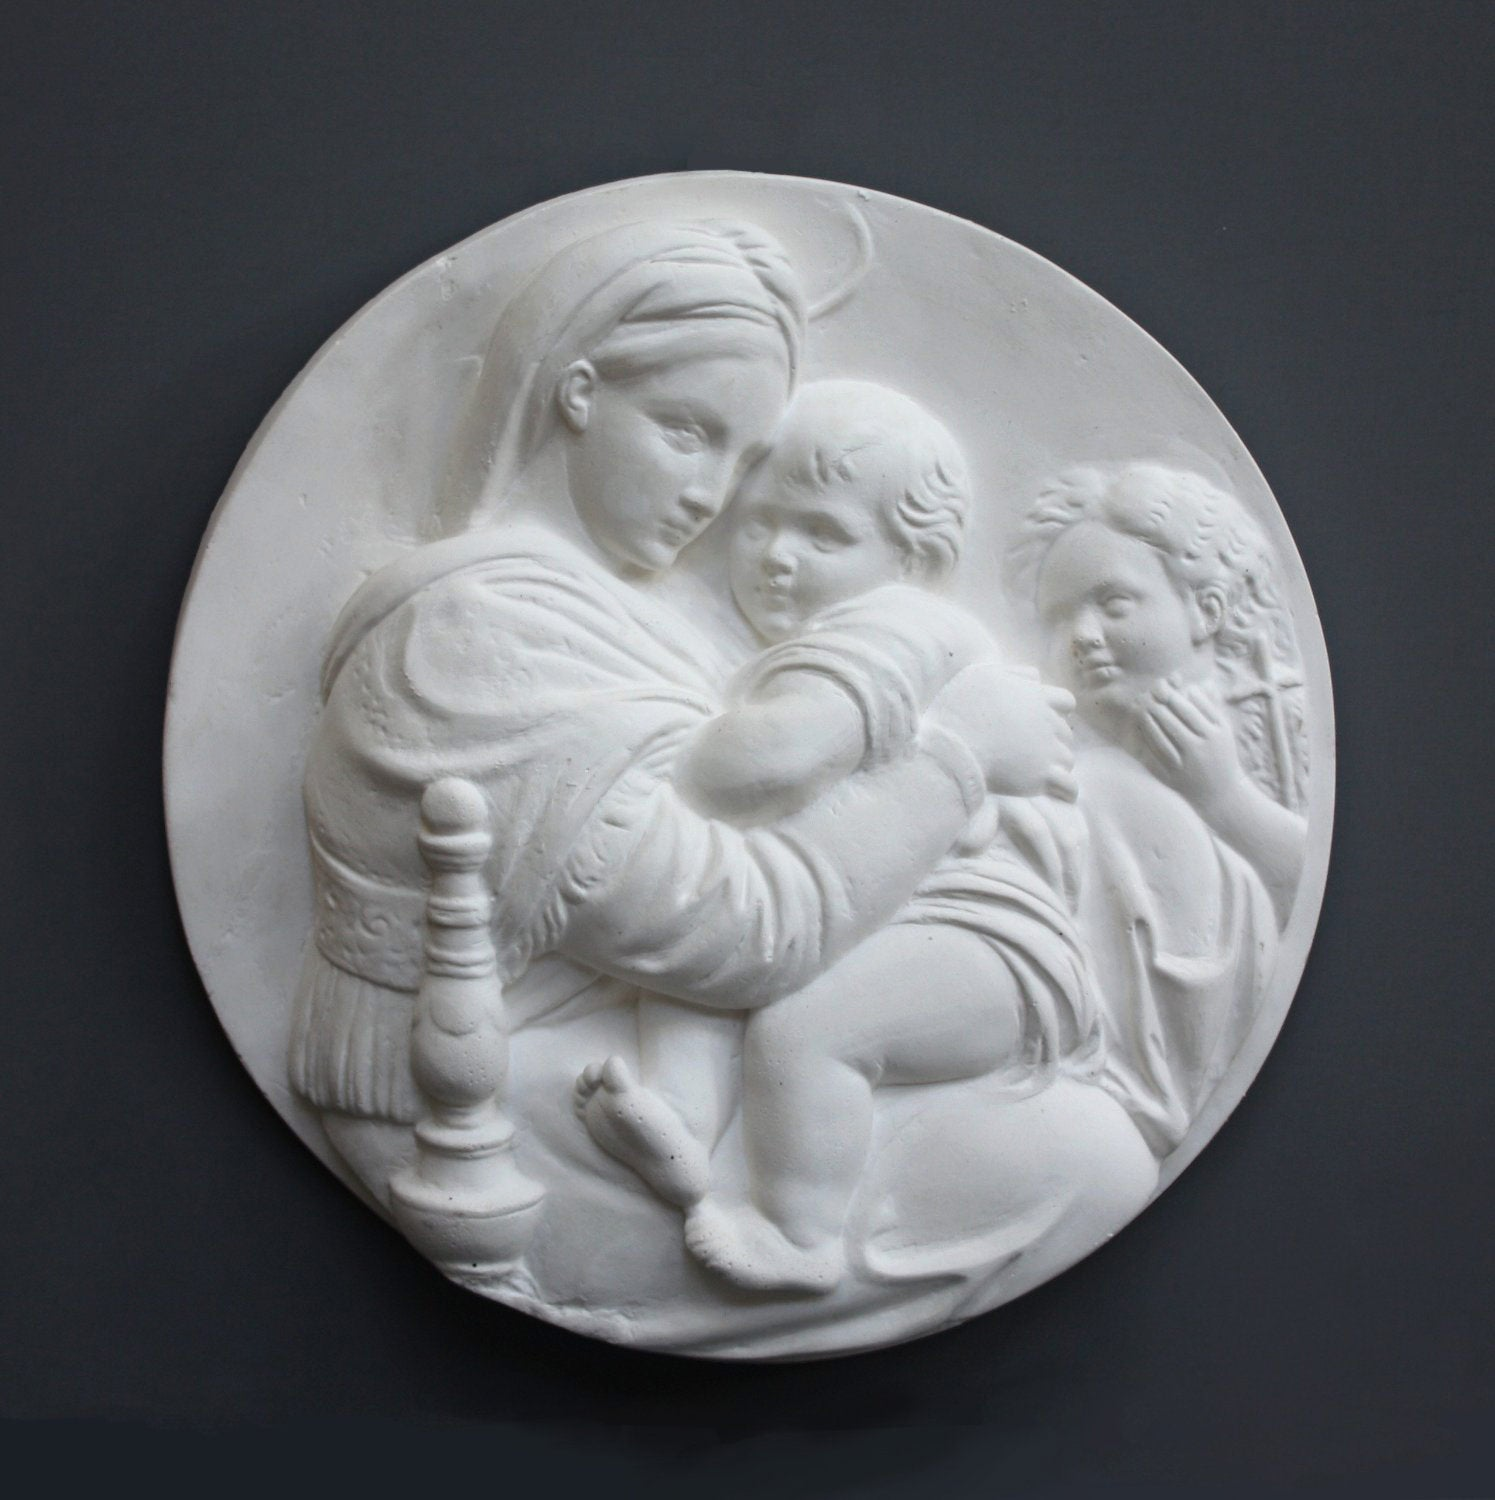 photo of relief plaster cast featuring the Madonna, Child, and St. John and hanging on a dark-colored wall